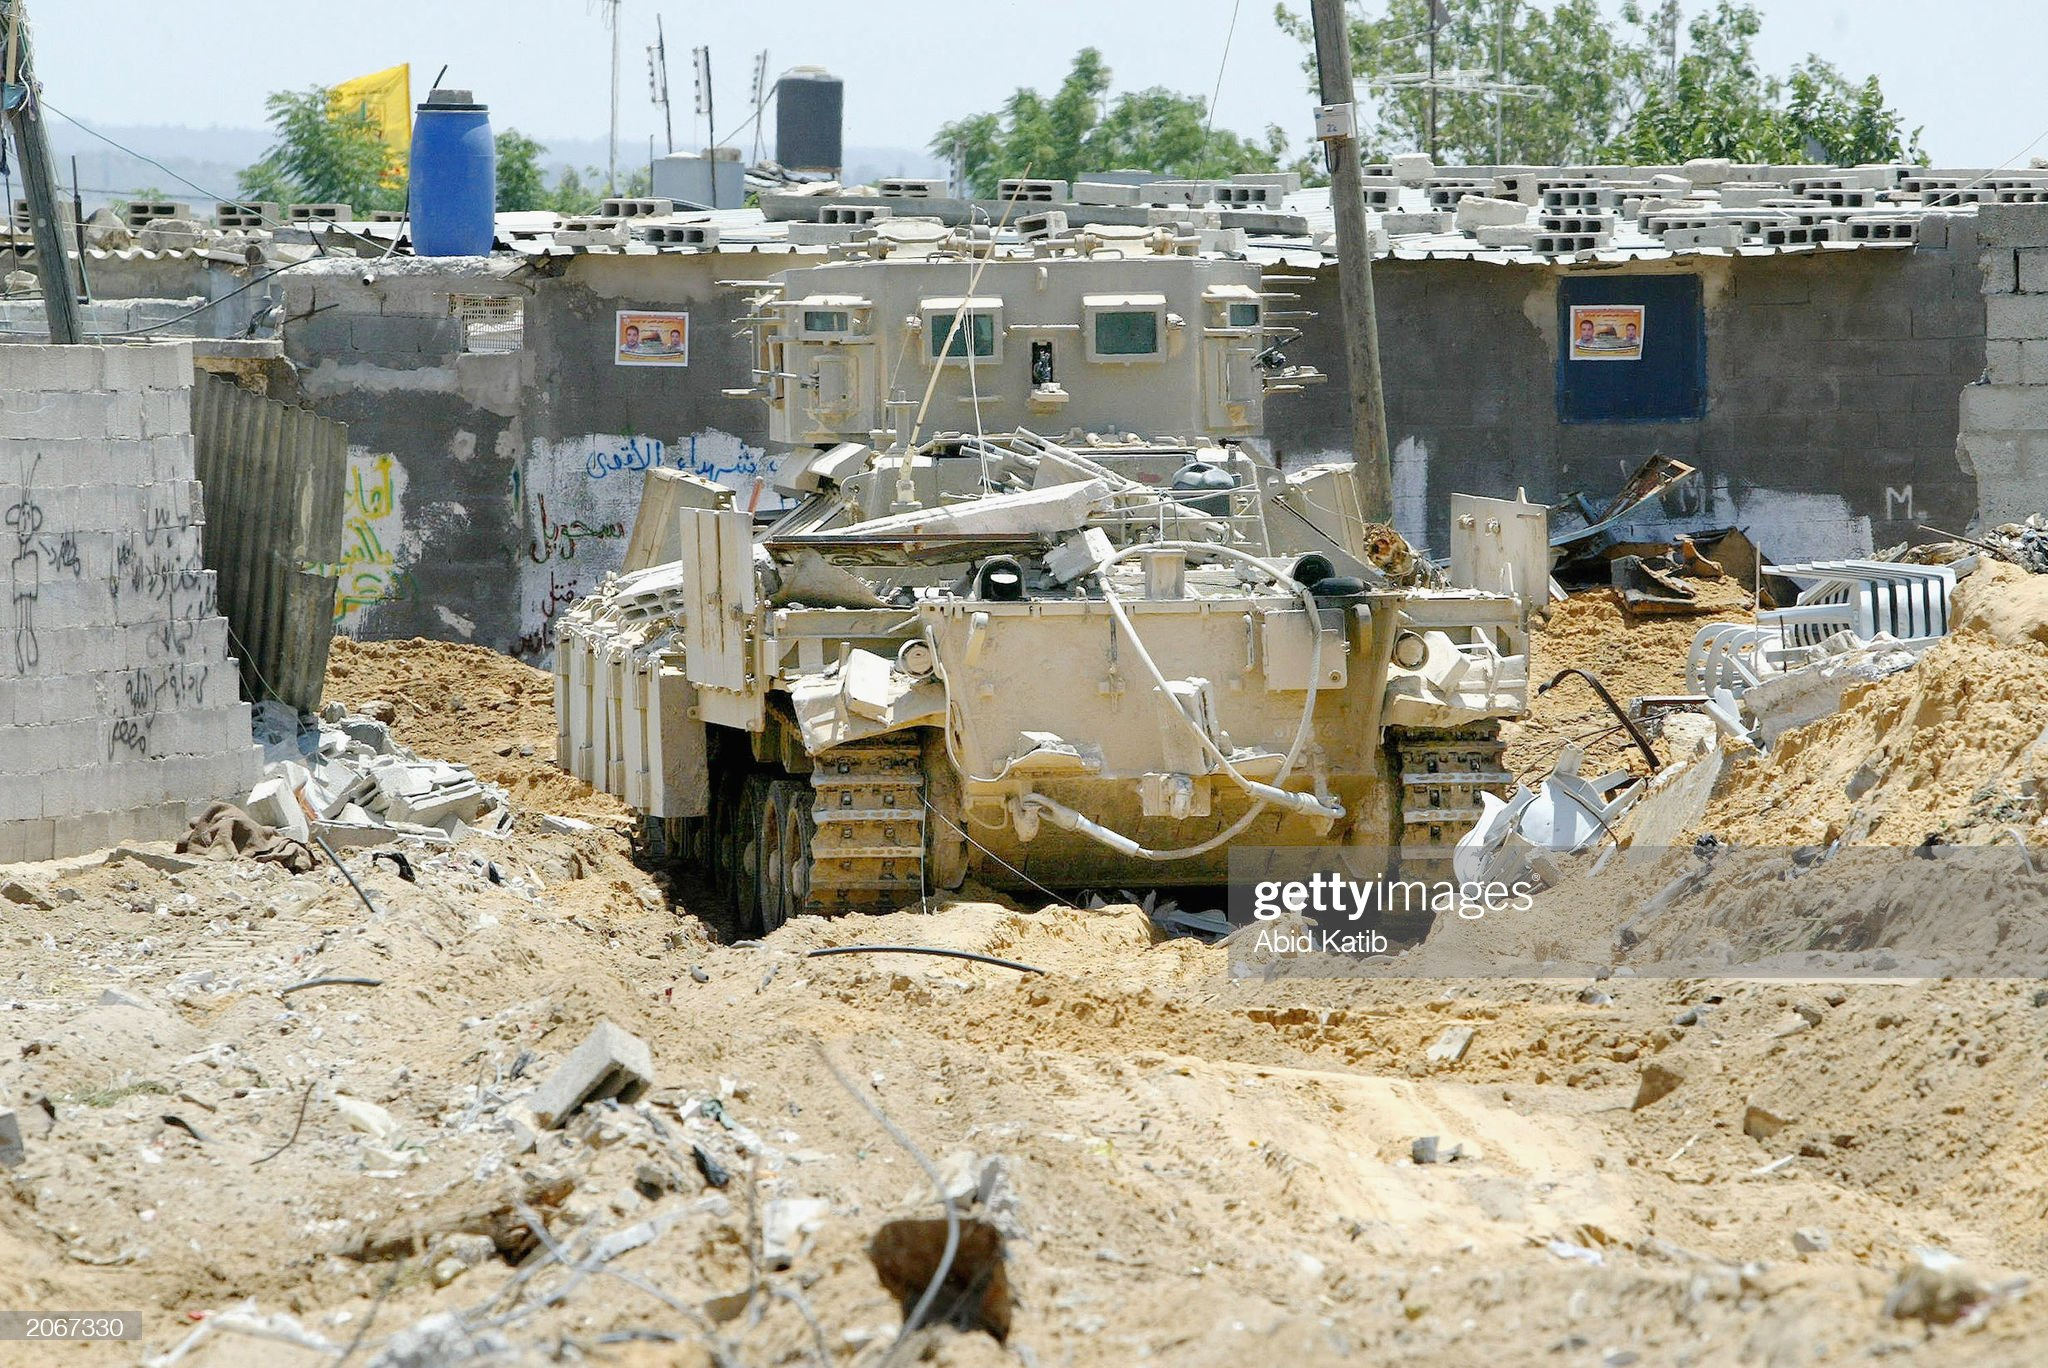 https://media.gettyimages.com/photos/an-israeli-tank-destroys-the-family-home-of-mousa-sehwel-a-member-of-picture-id2067330?s=2048x2048